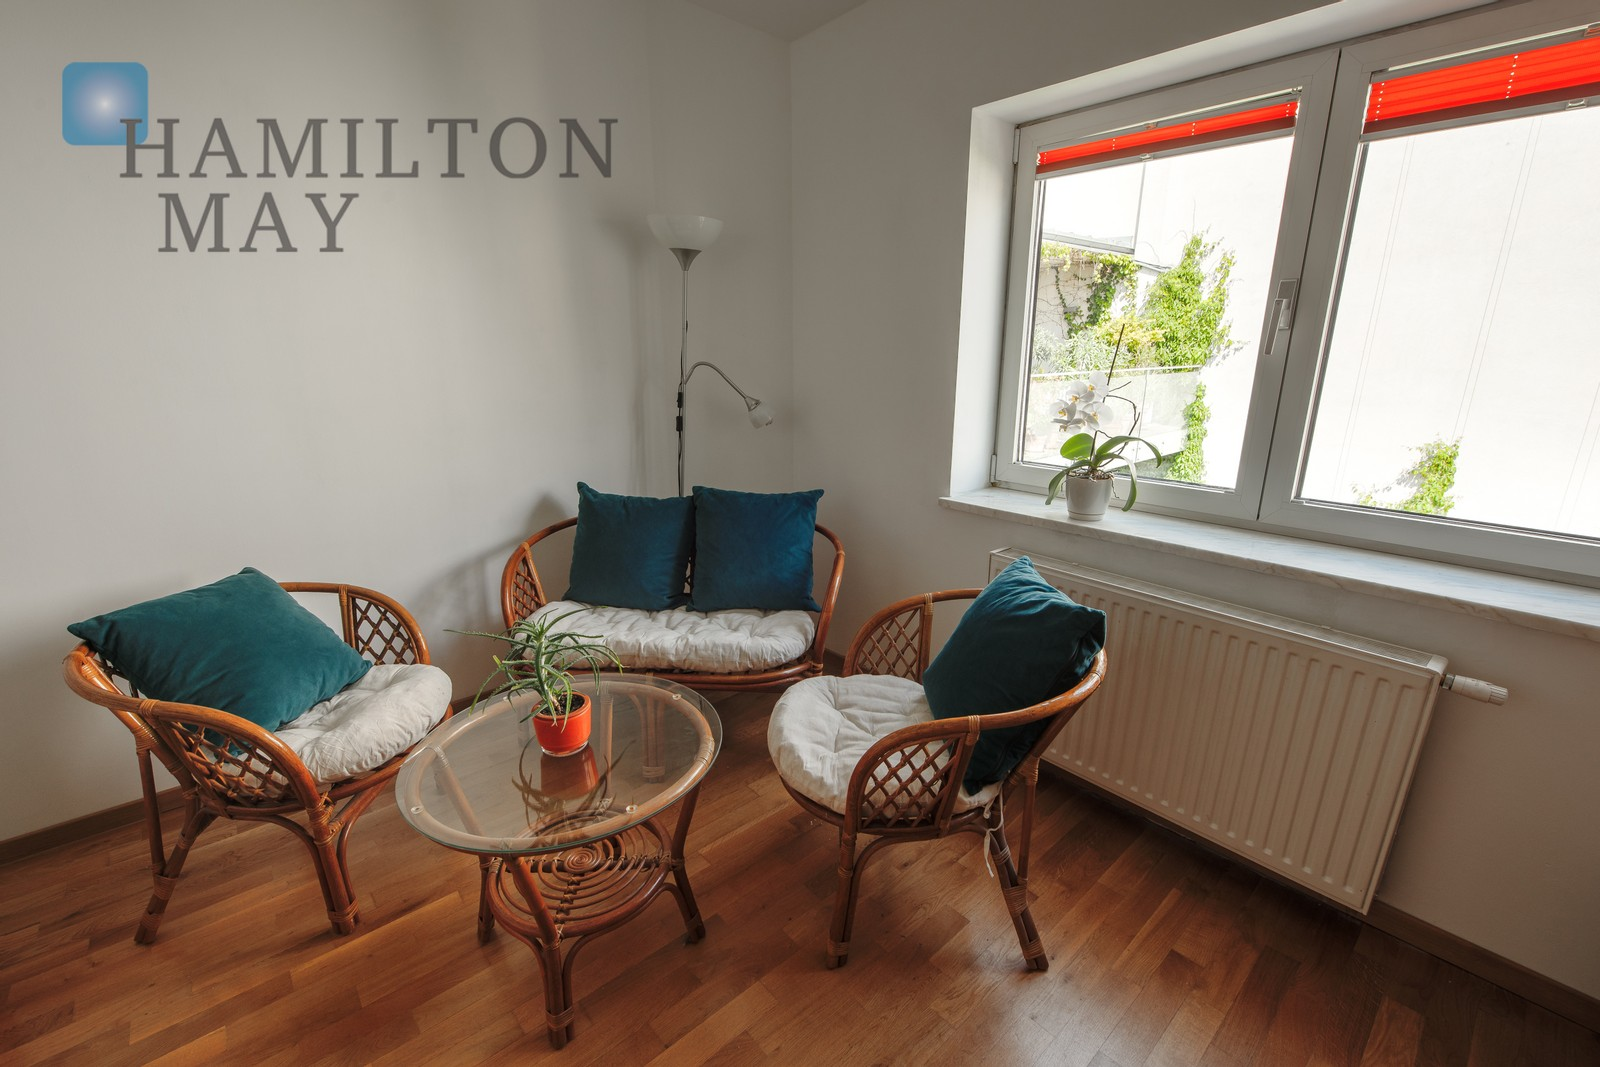 Spacious apartment with a terrace available for rent in the Old Town area Krakow for rent